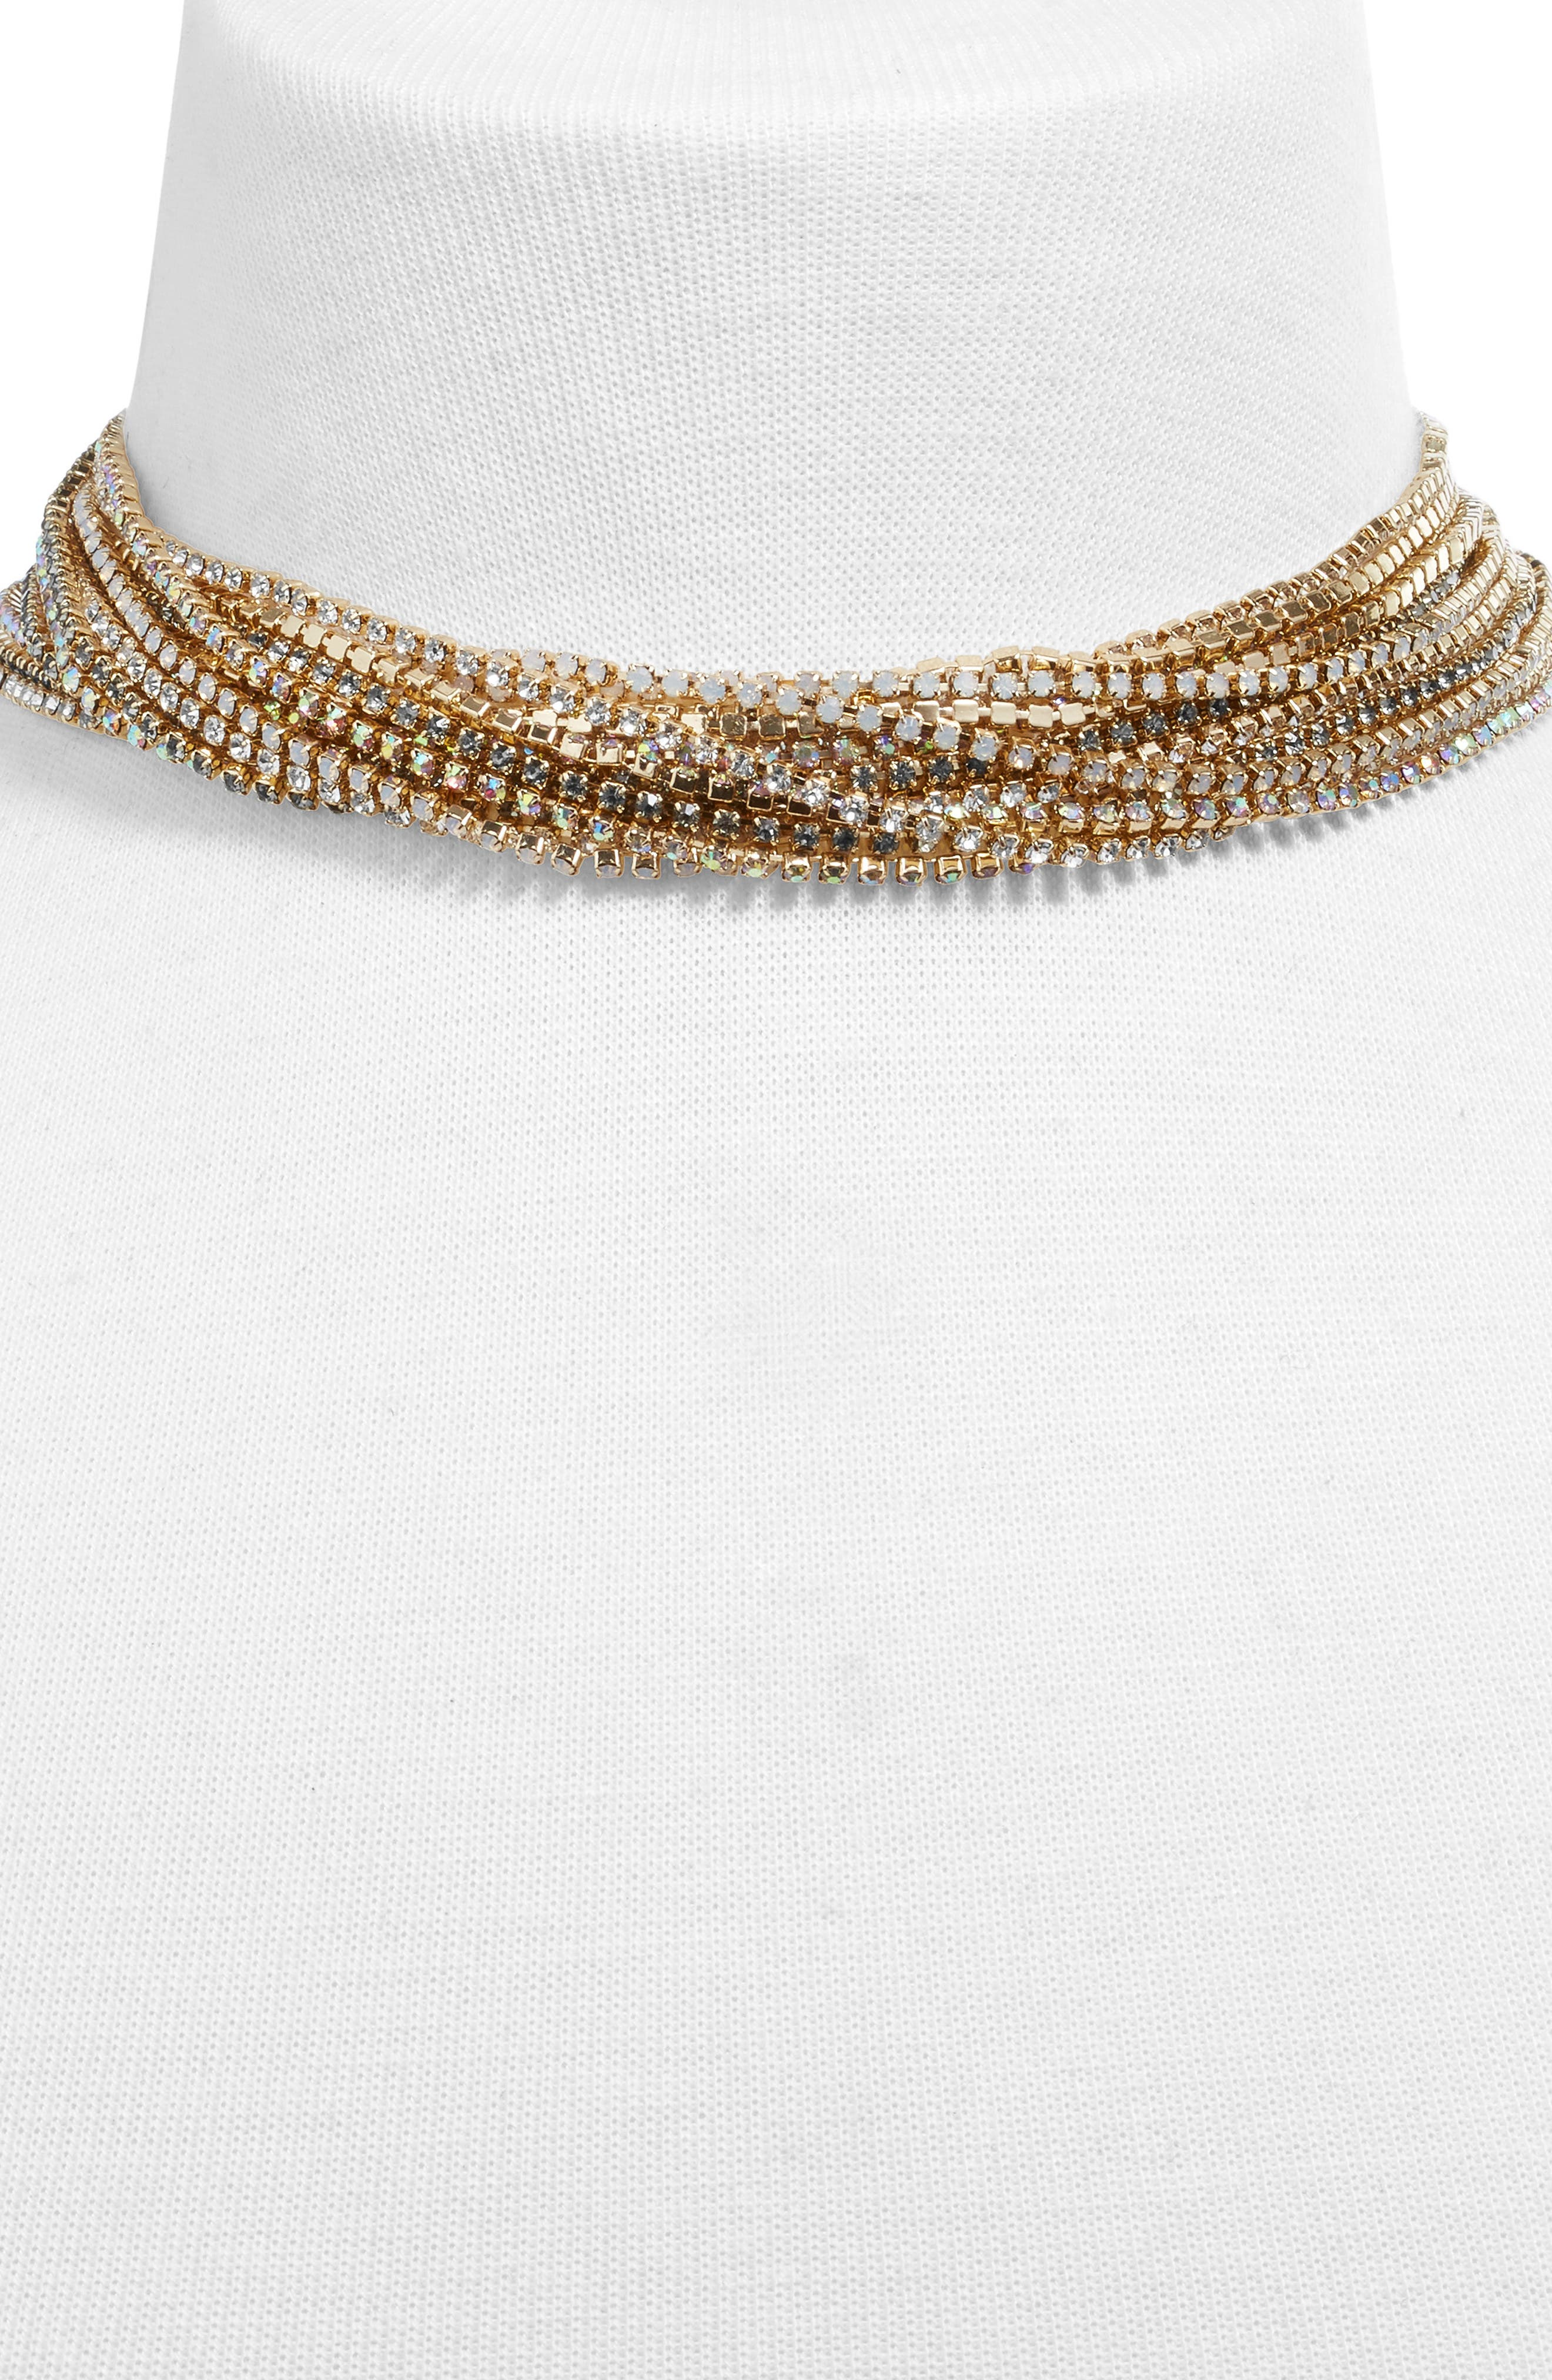 BAUBLEBAR,                             Multistrand Crystal Choker,                             Alternate thumbnail 2, color,                             020